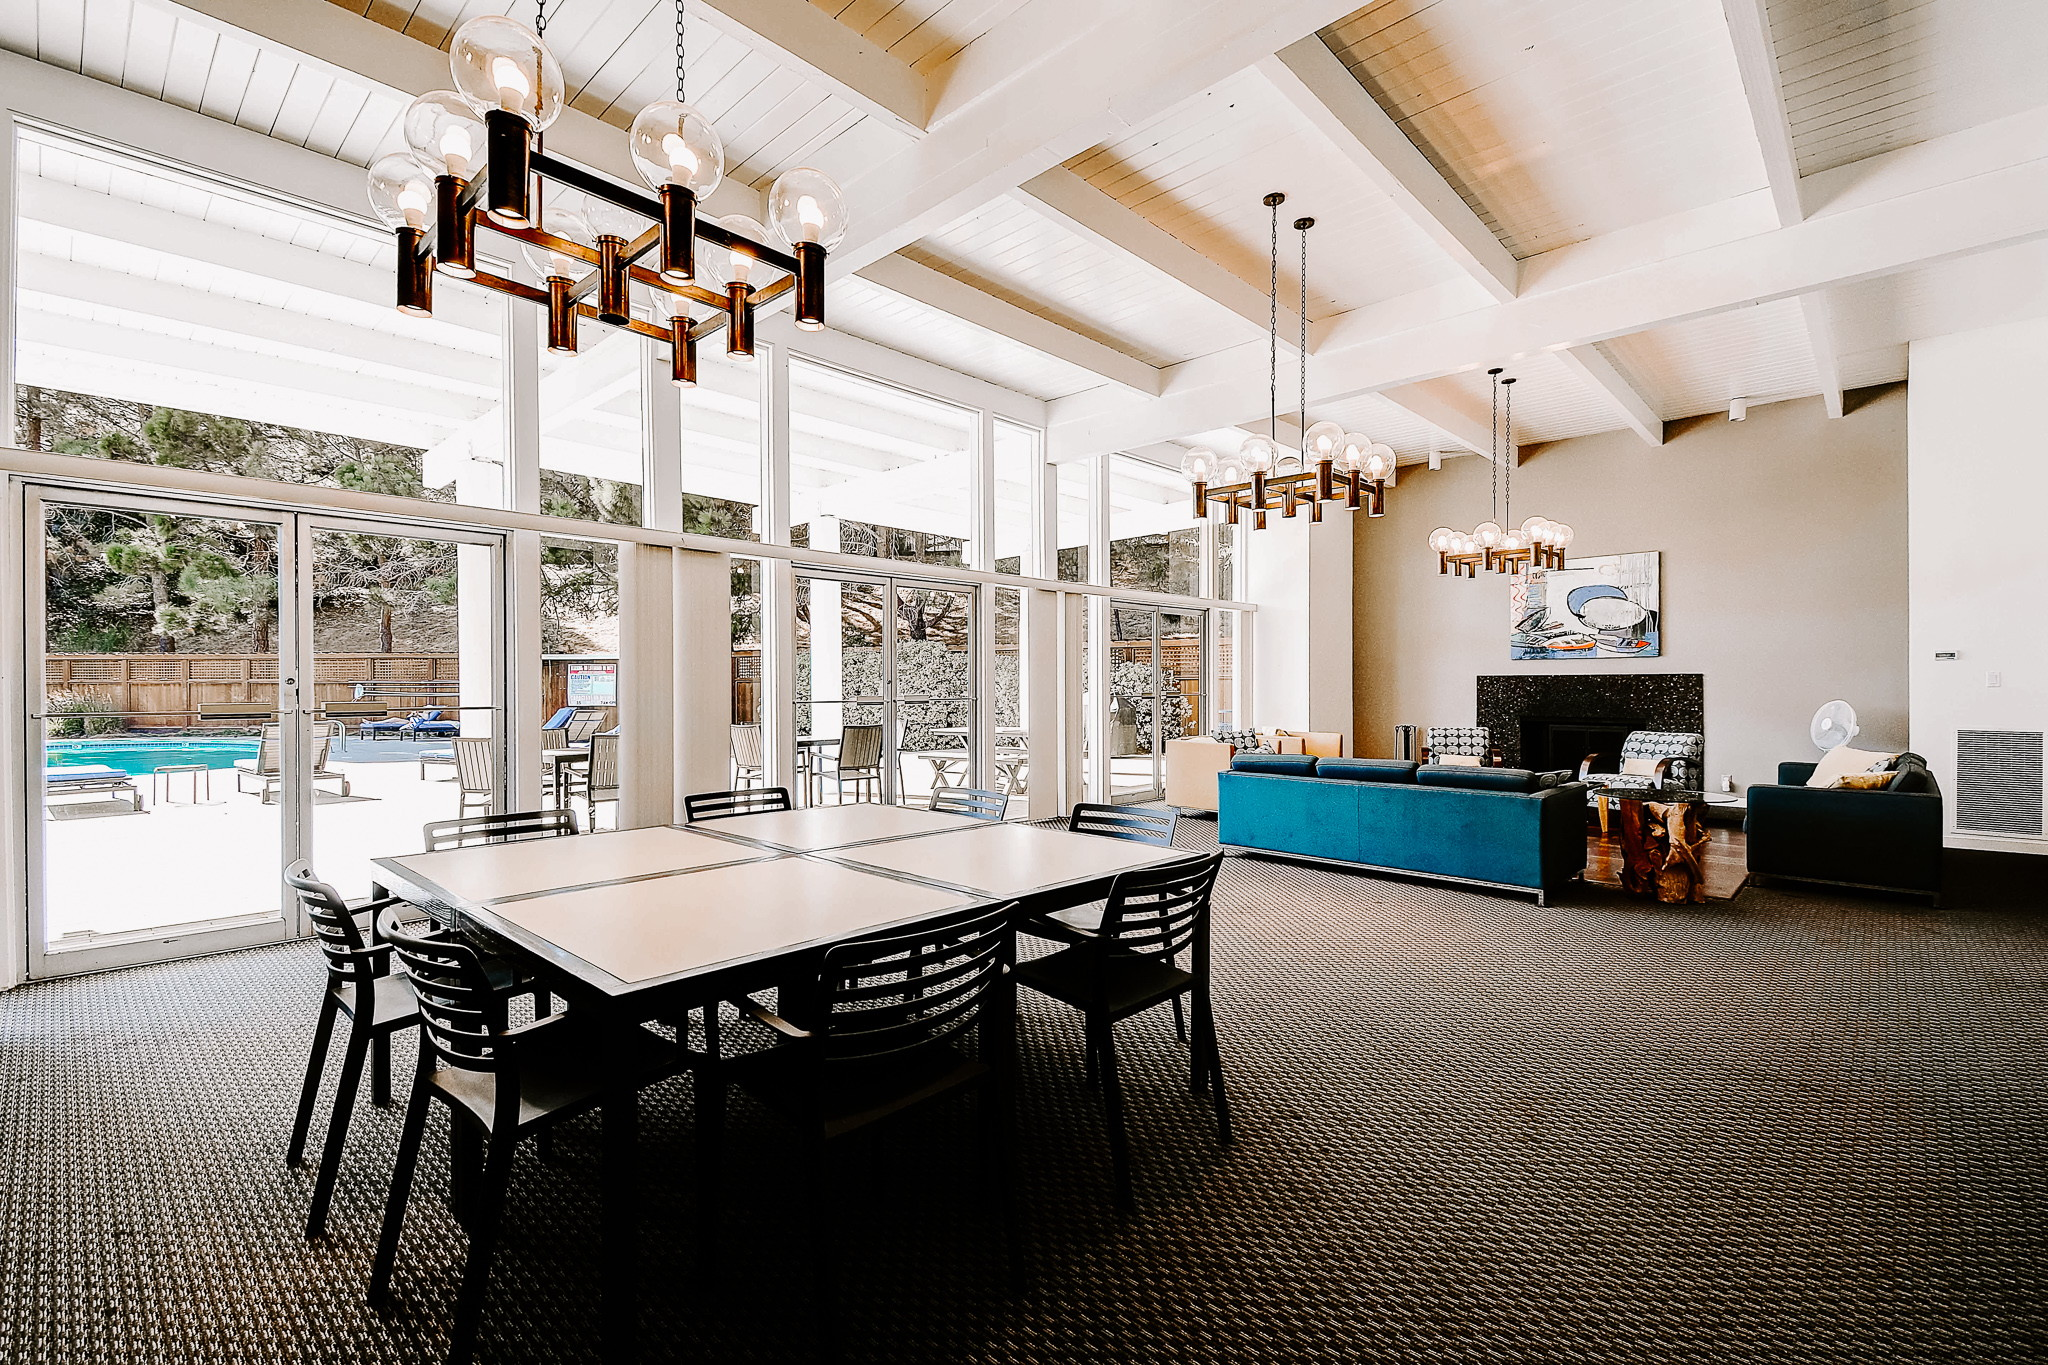 3223 Shelter Bay Avenue-31 Mill Valley Top Realtor - Allie Fornesi on Own Marin County's #1 Real Estate Team.jpg